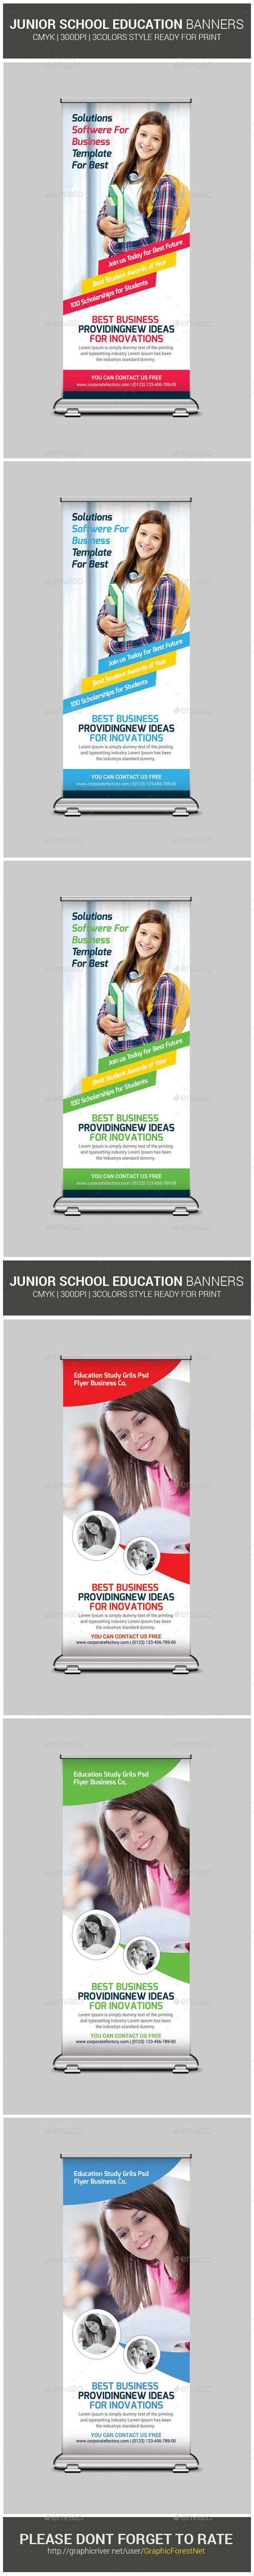 School Education Roll-Up Banners Bundle Template #design Download: http://graphicriver.net/item/school-education-rollup-banners-bundle/12968167?ref=ksioks